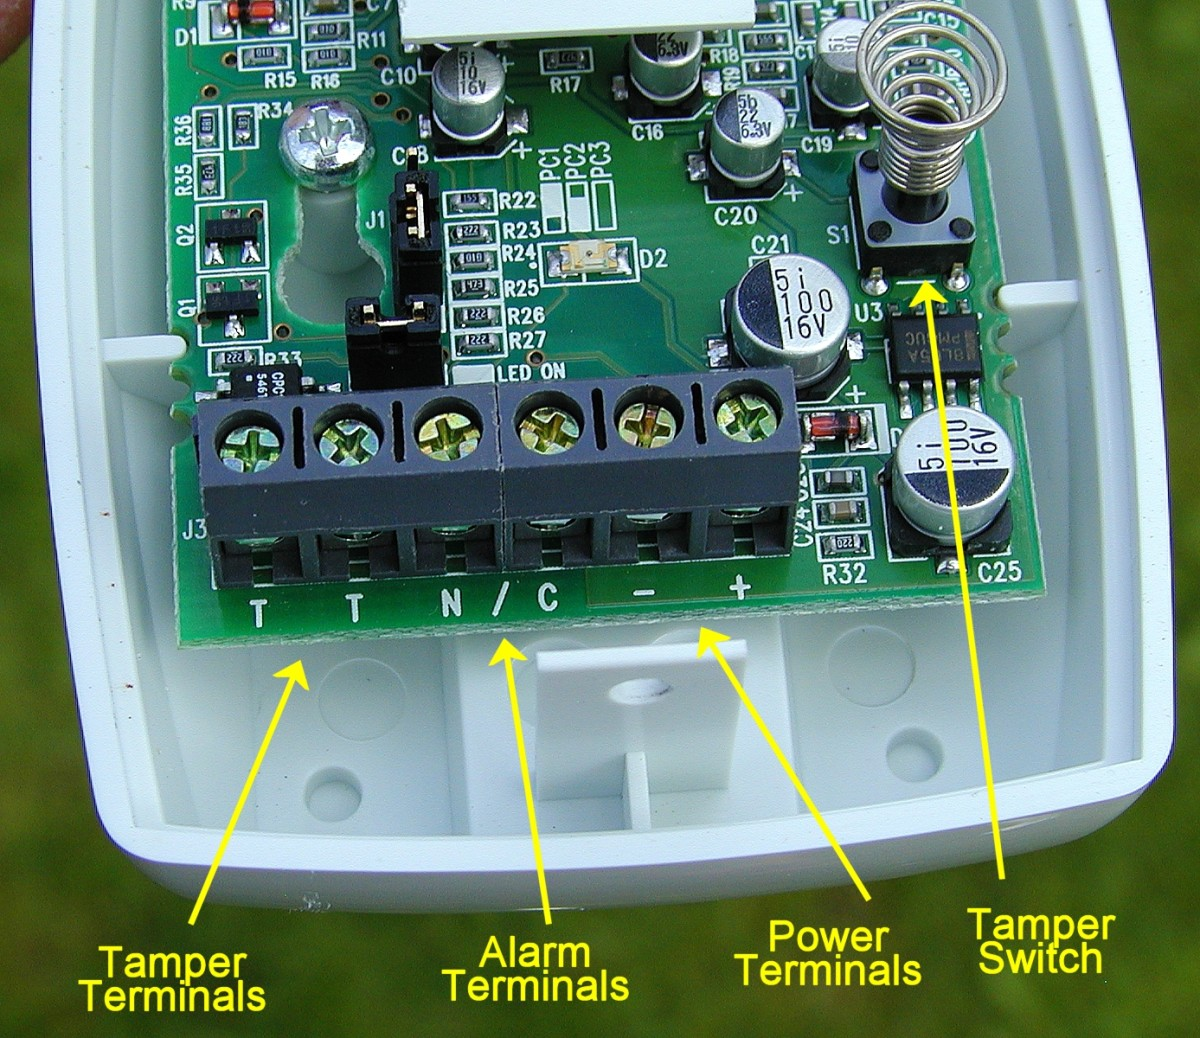 This PIR sensor has 3 pairs of terminals. Alarm contacts are normally closed (n/c) and open on activation .Tamper contacts are n/c and open when lid is removed.